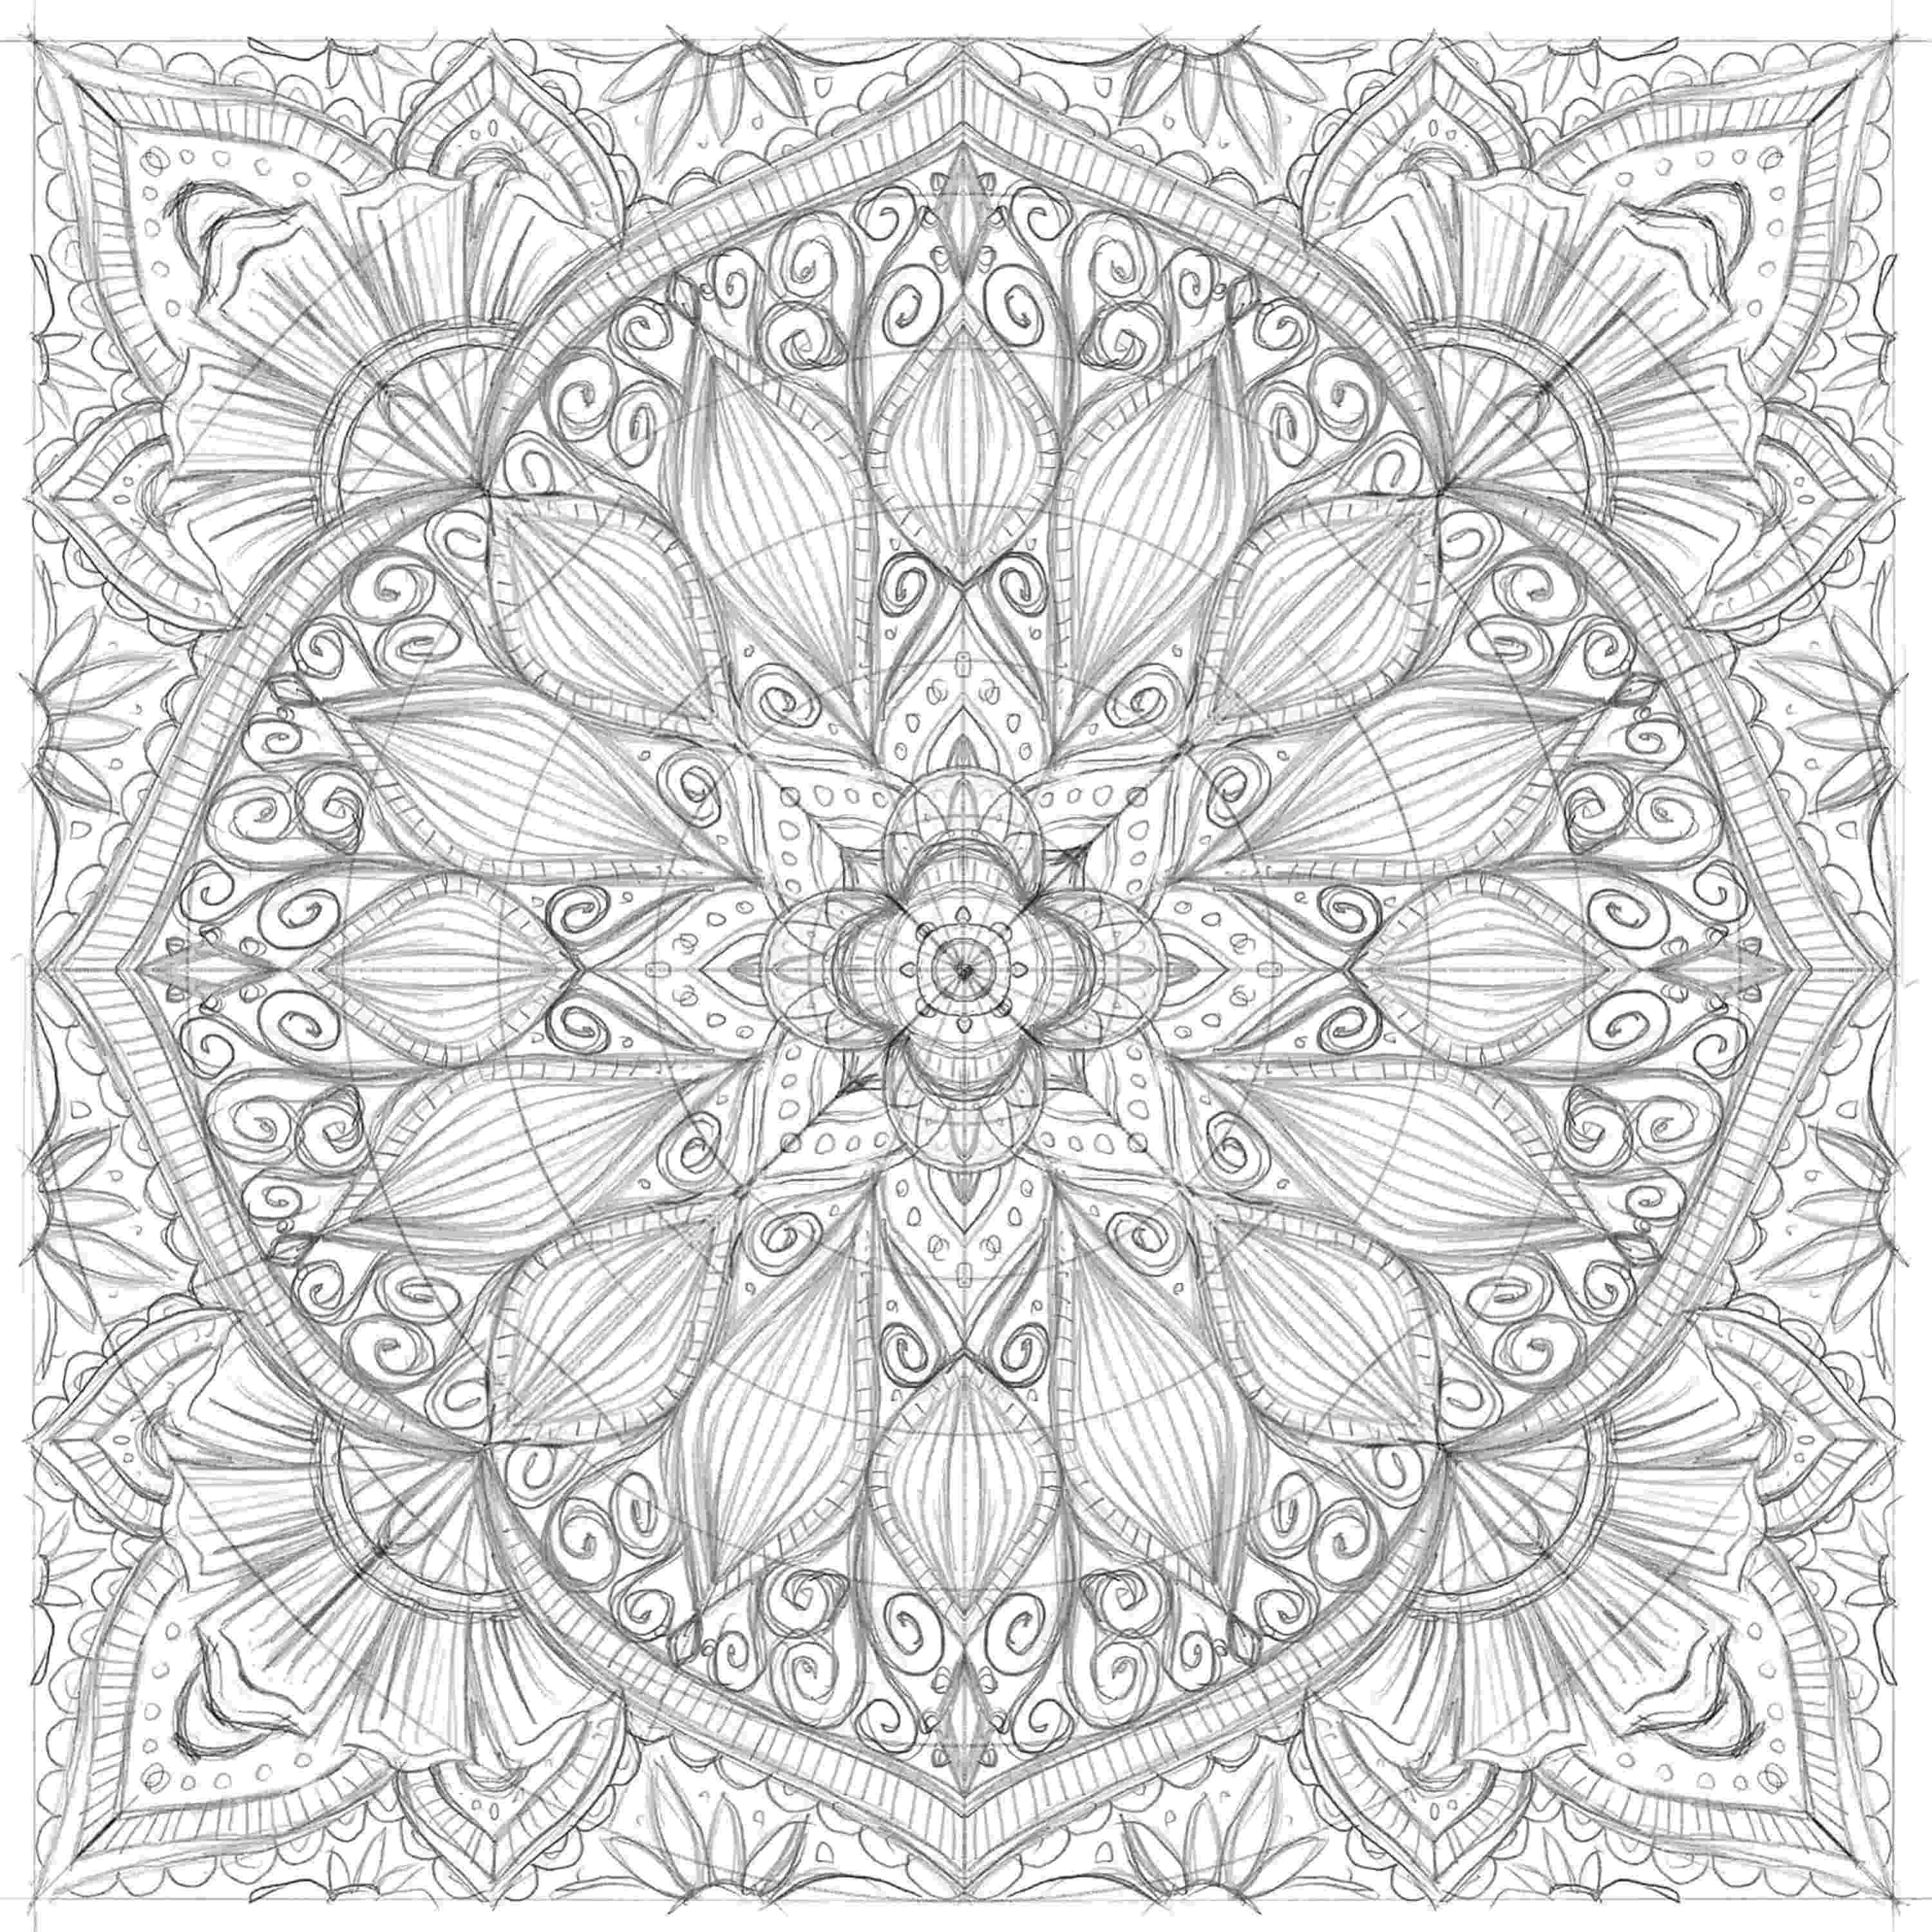 coloring book for surface pro 3 where did summer go part 3 surface pattern design for pro 3 surface book coloring